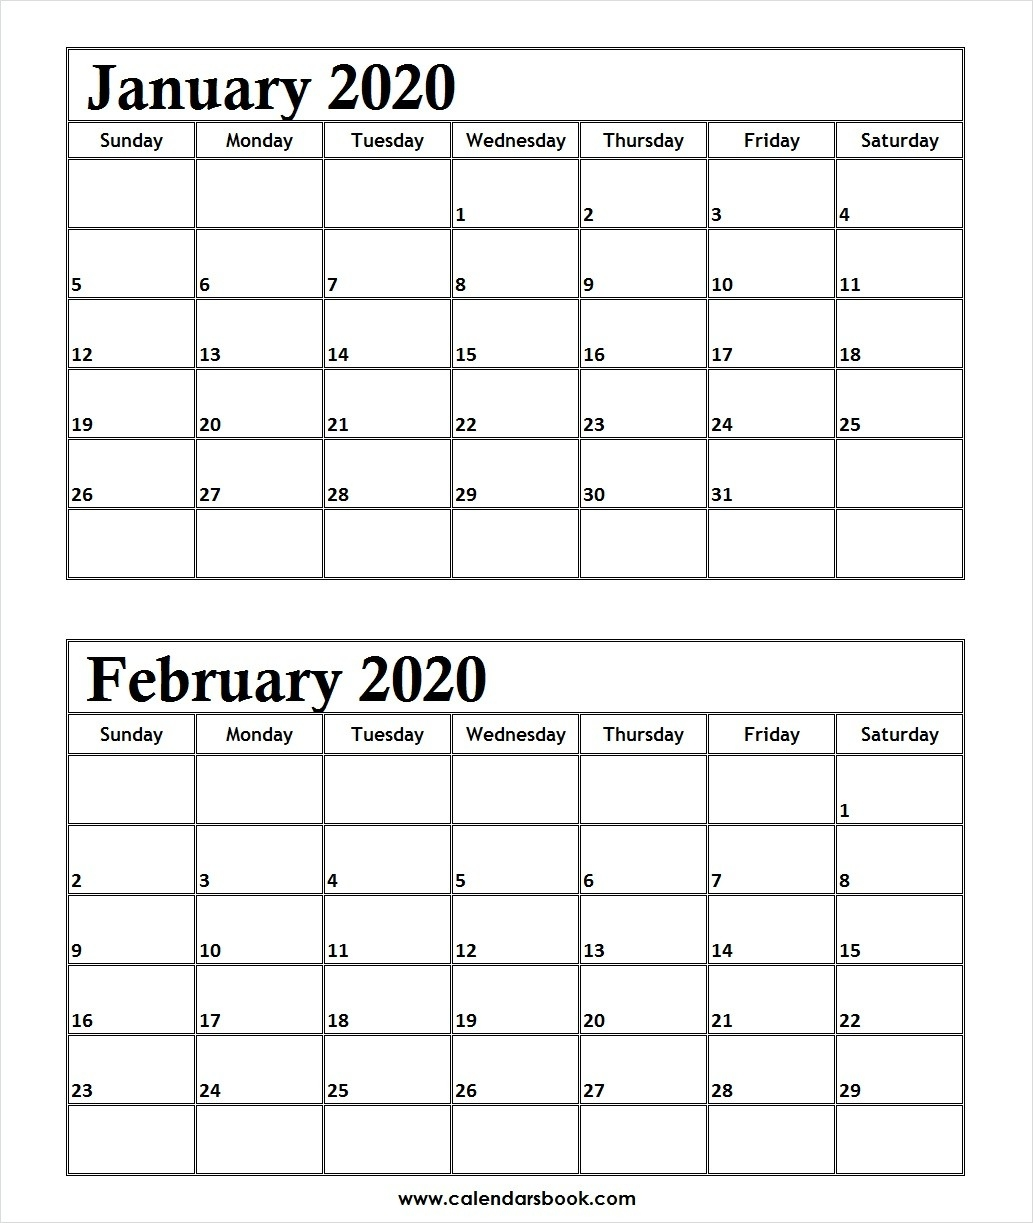 Print January February 2020 Calendar Template | 2 Month Calendar-Calendar Of January And February 2020